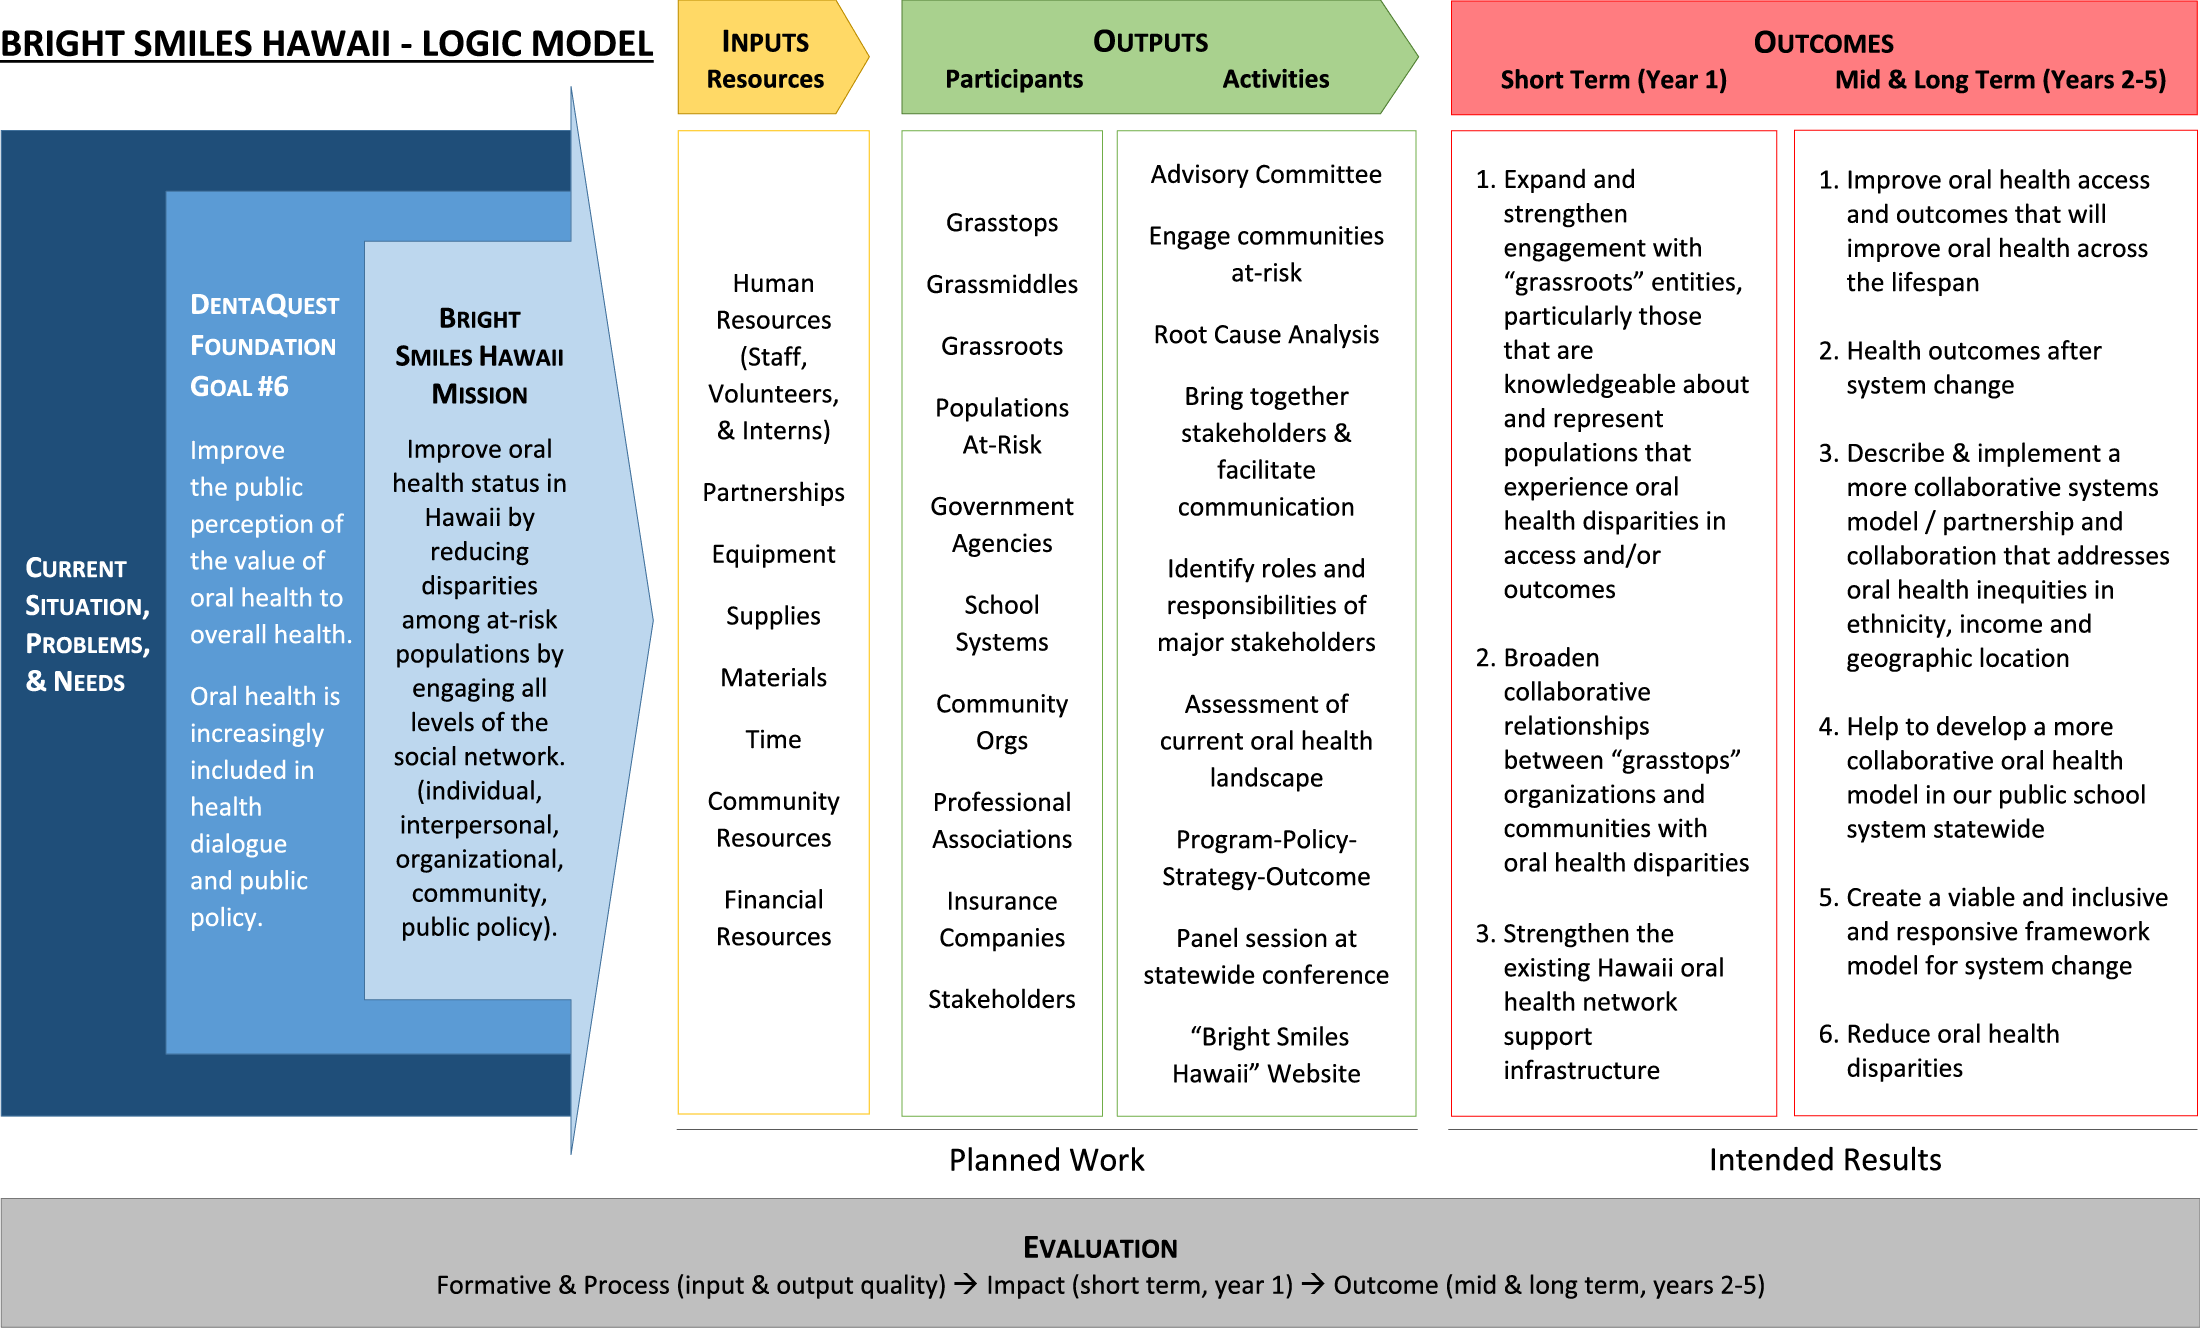 This logic model represents the purpose, resources, deliverables, and goals of Bright Smiles Hawaii.